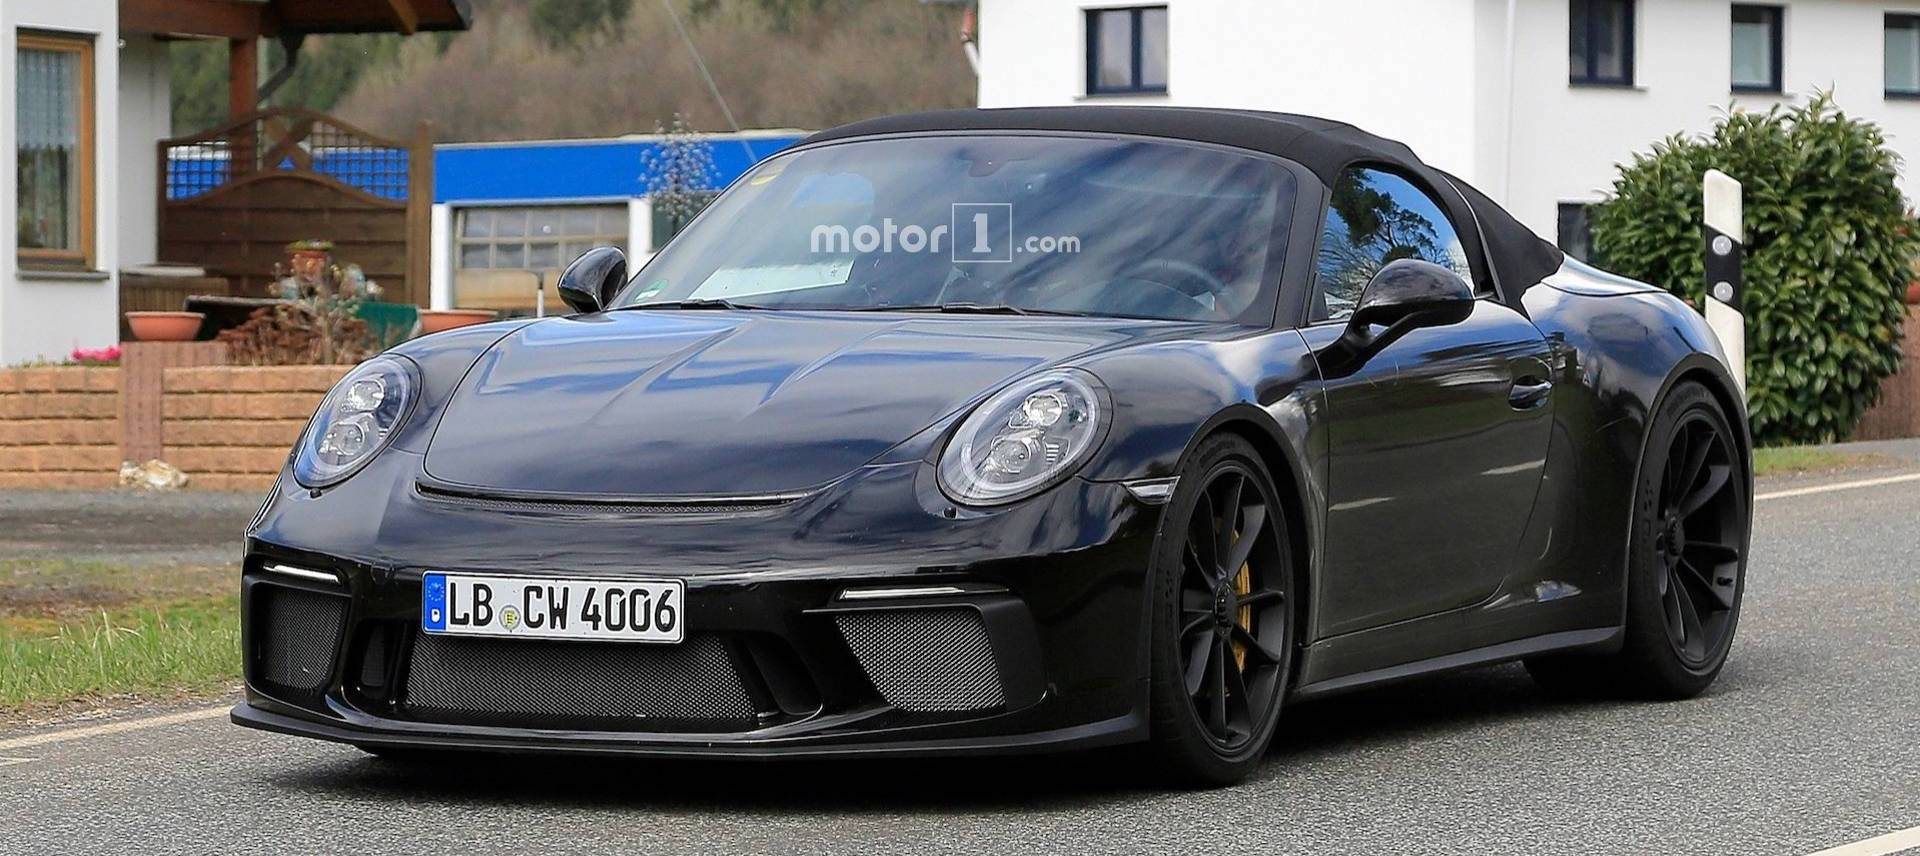 Porsche 911 Speedster Caught Posing For The Spy Camera